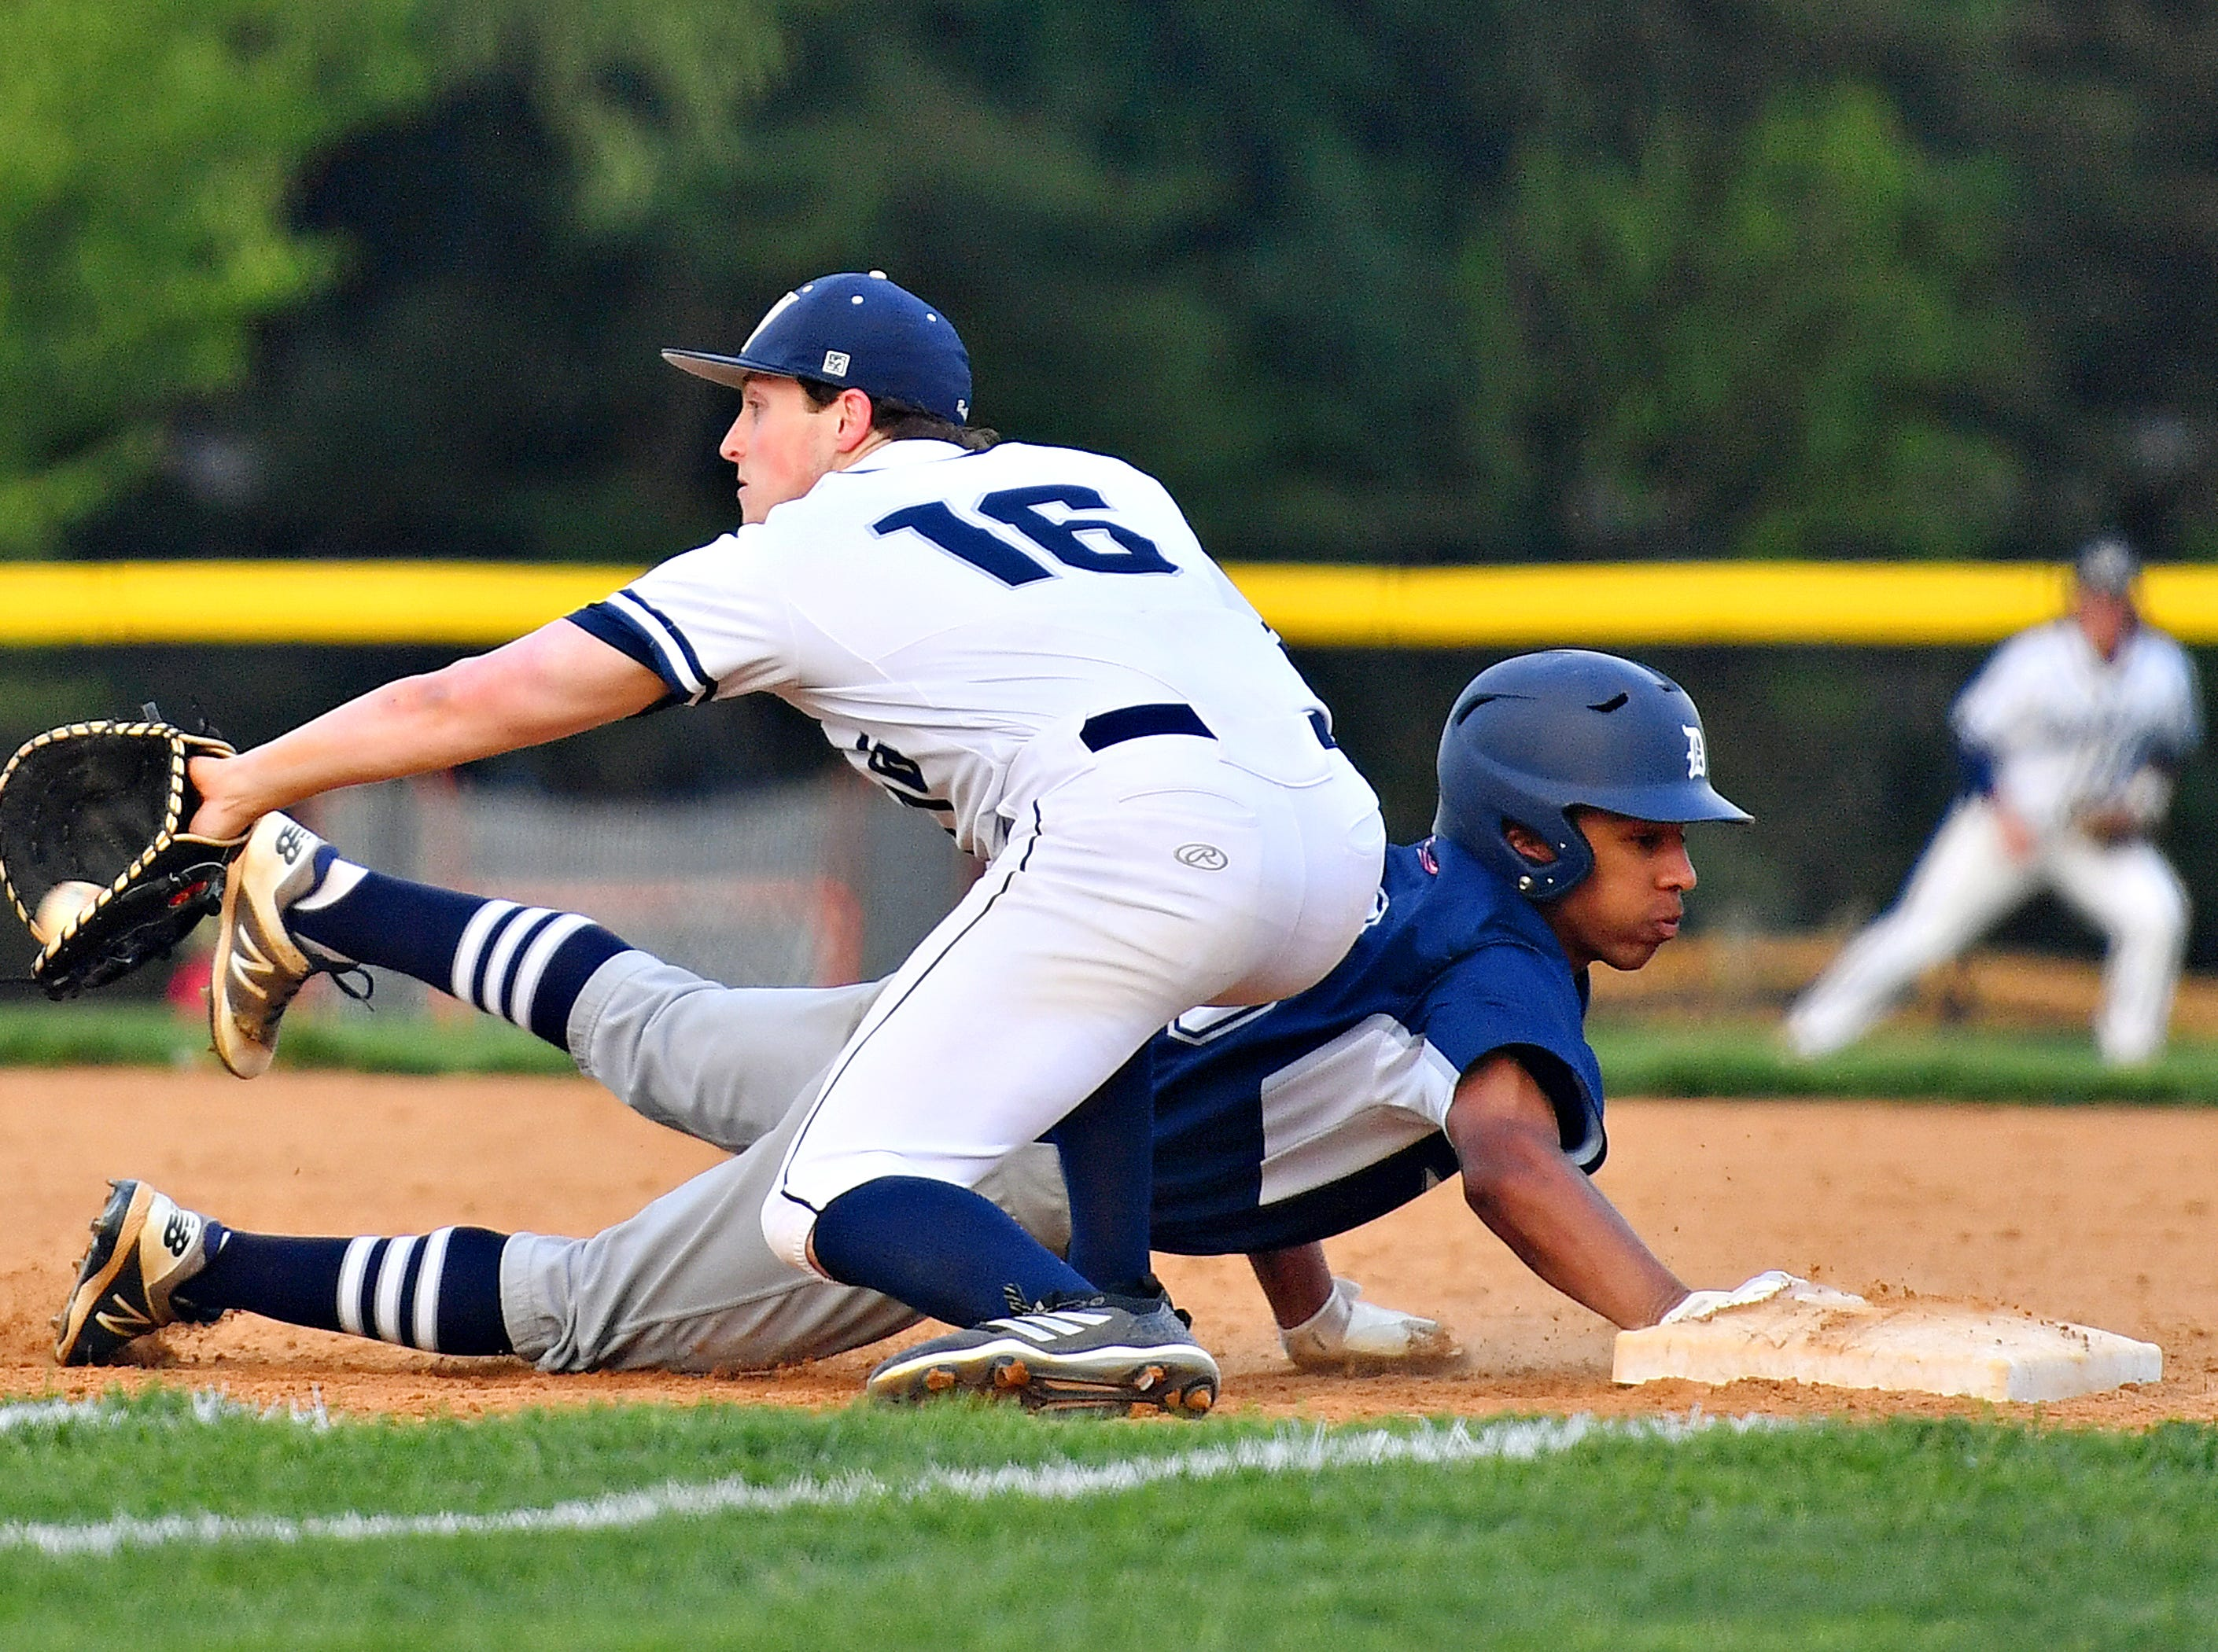 West York's Gabe Allen, front, looks for the ball in an attempt to pick off Dallastown's Andrew Jones during baseball semifinal action at Spring Grove Area High School in Jackson Township, Wednesday, May 15, 2019. Dallastown would win the game 12-0. Dawn J. Sagert photo